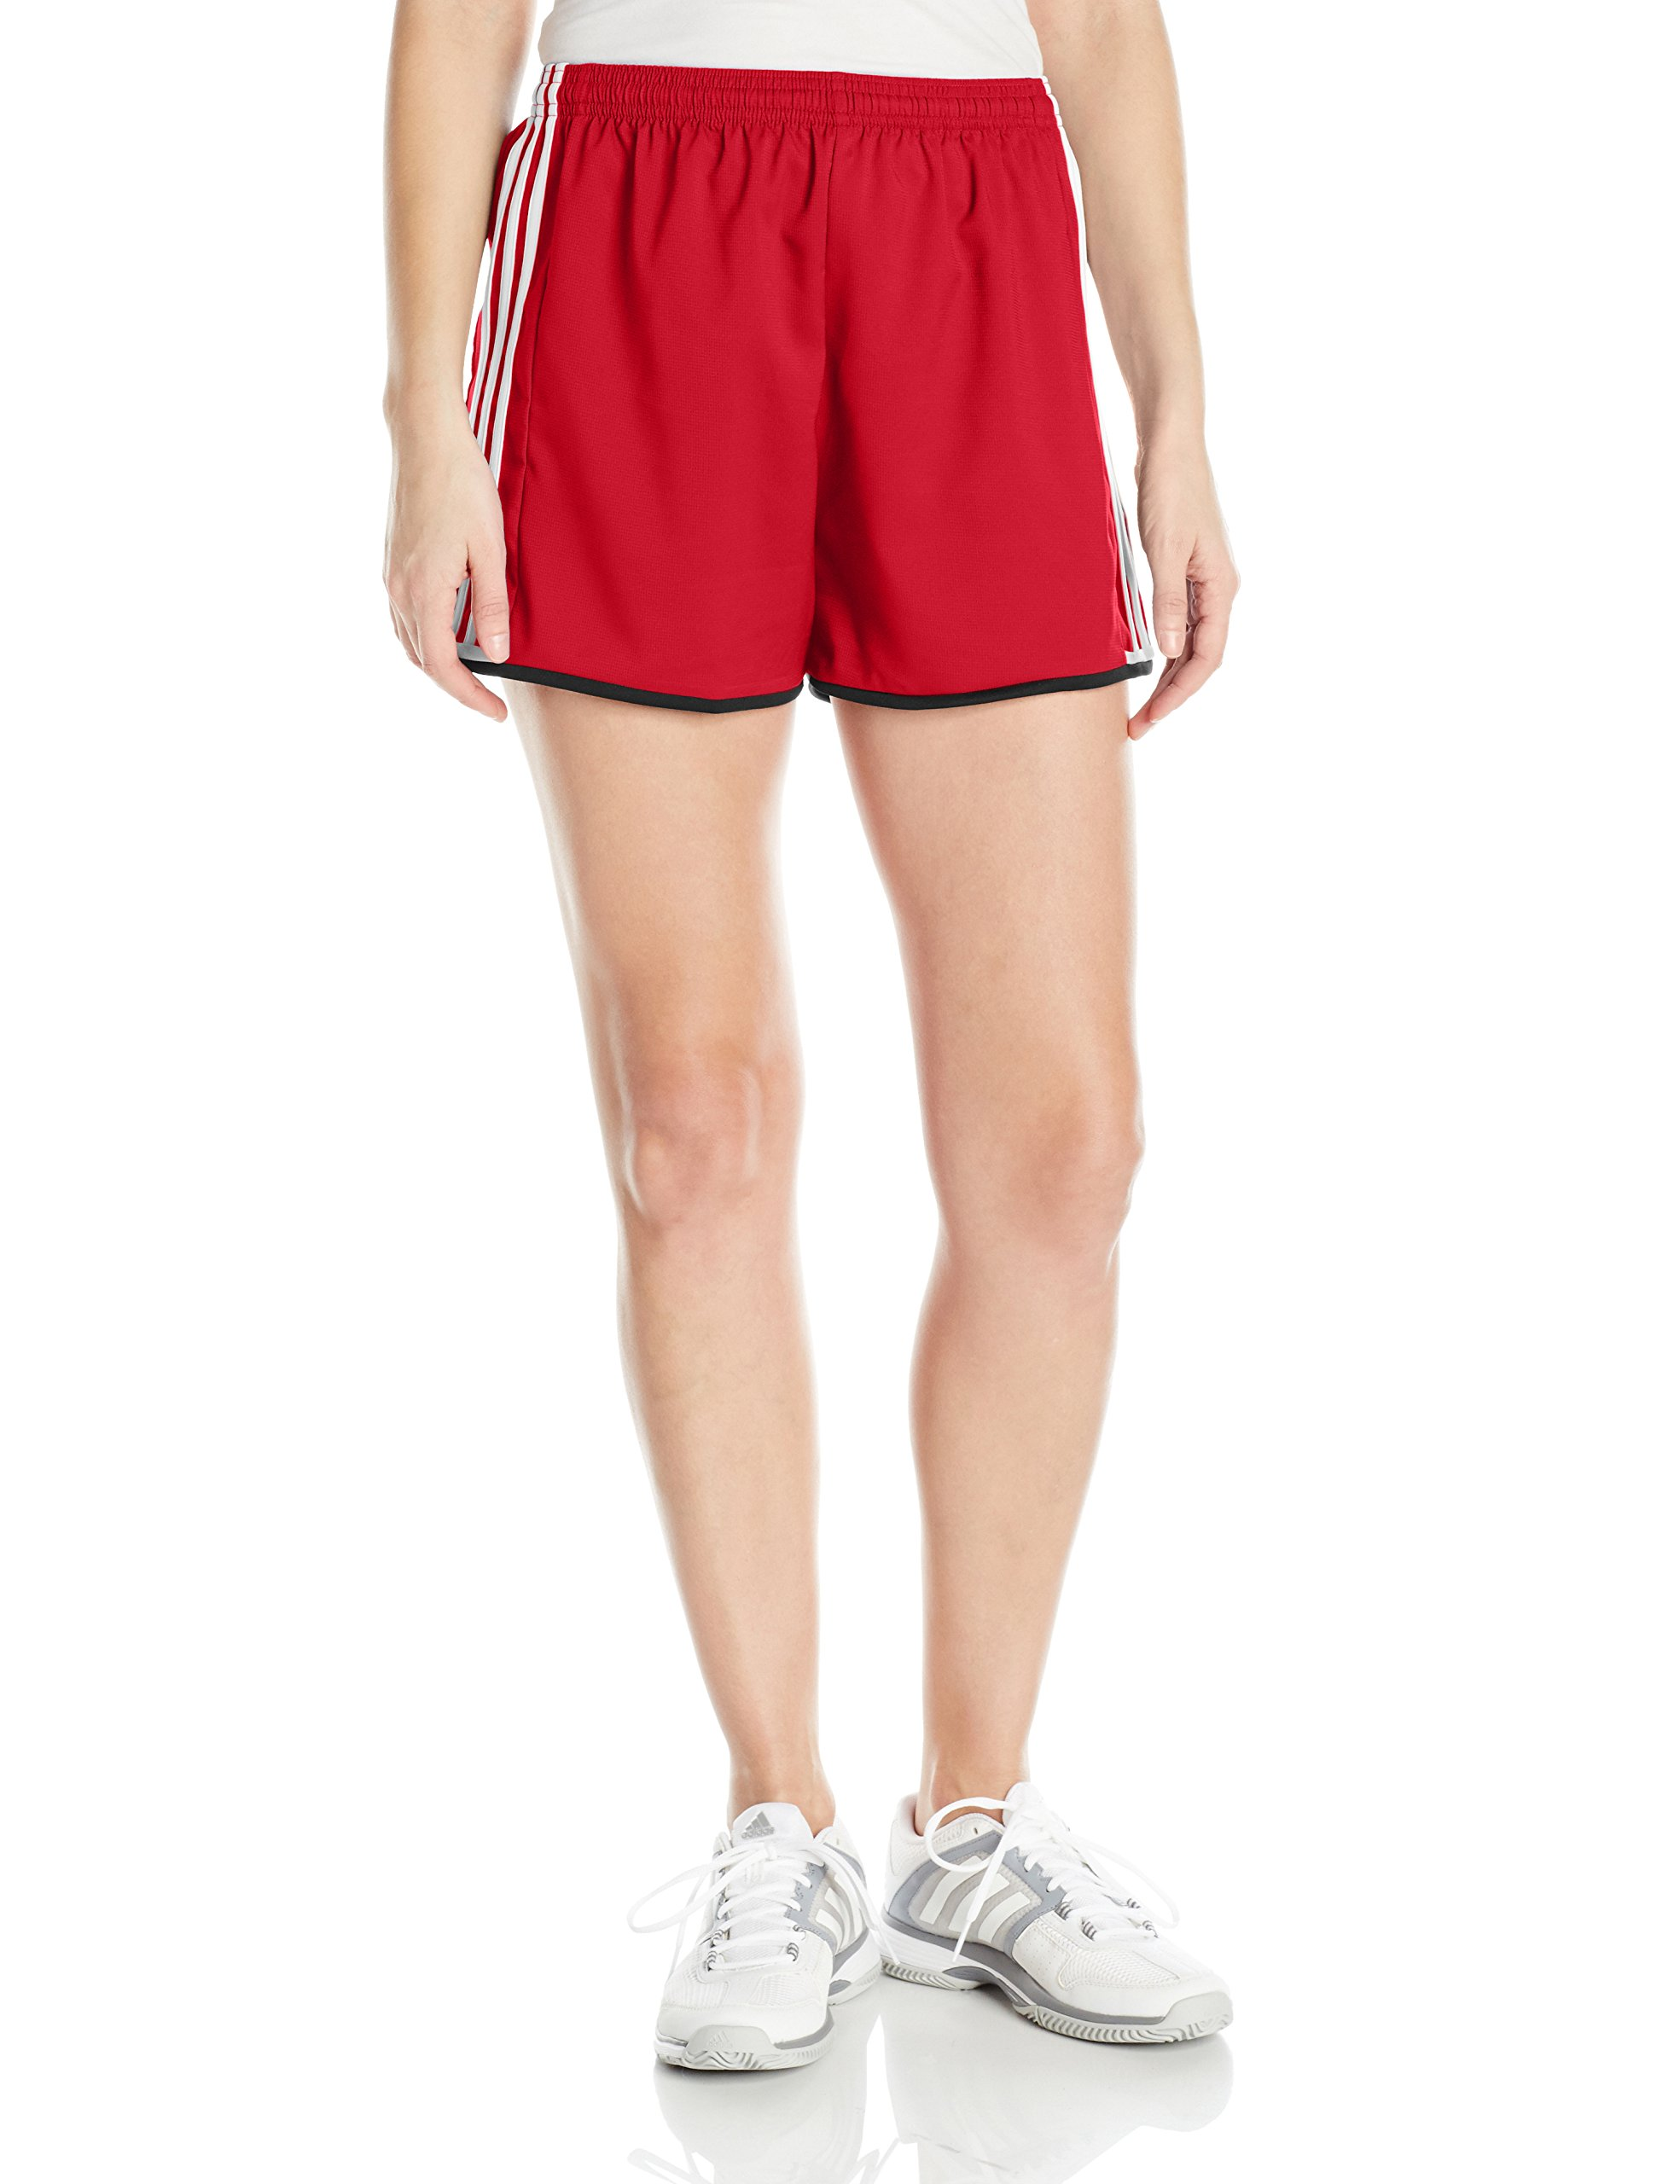 adidas Women's Soccer Condivo 16 Shorts, Power Red/White, X-Small